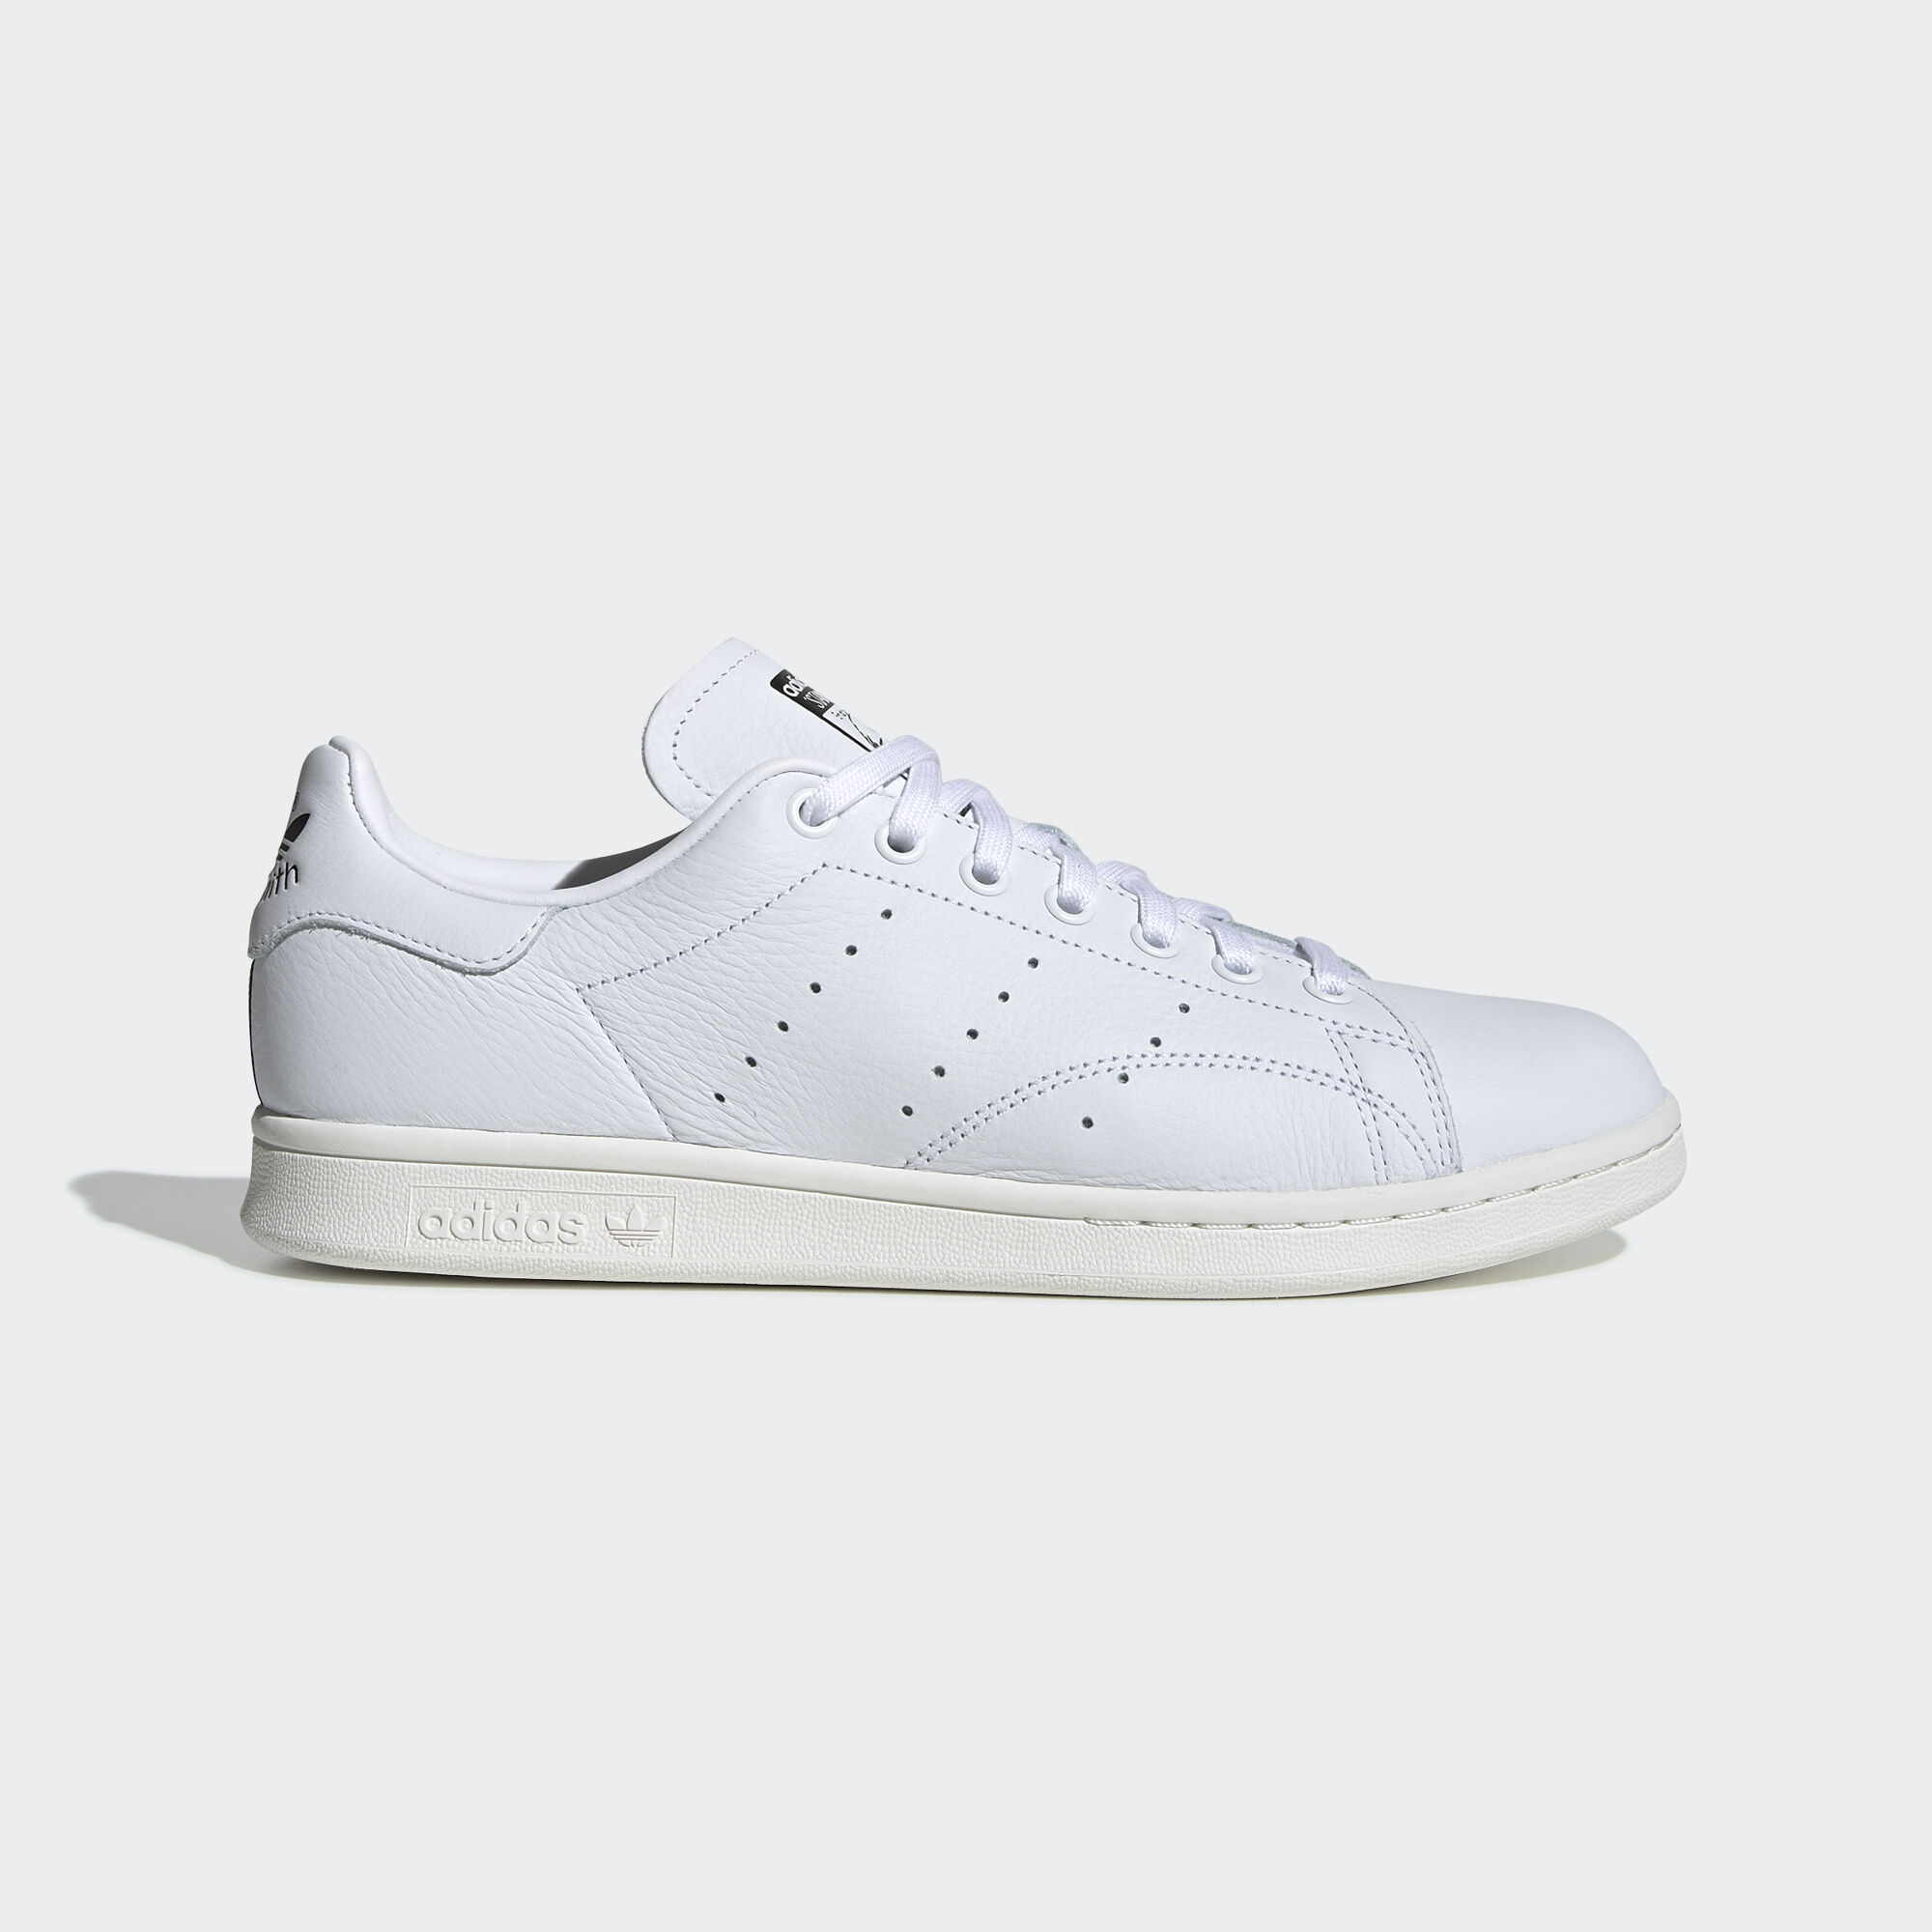 adidas - Stan Smith Shoes Ftwr White   Crystal White   Collegiate Green  F34071. Originals 0efa5a62b